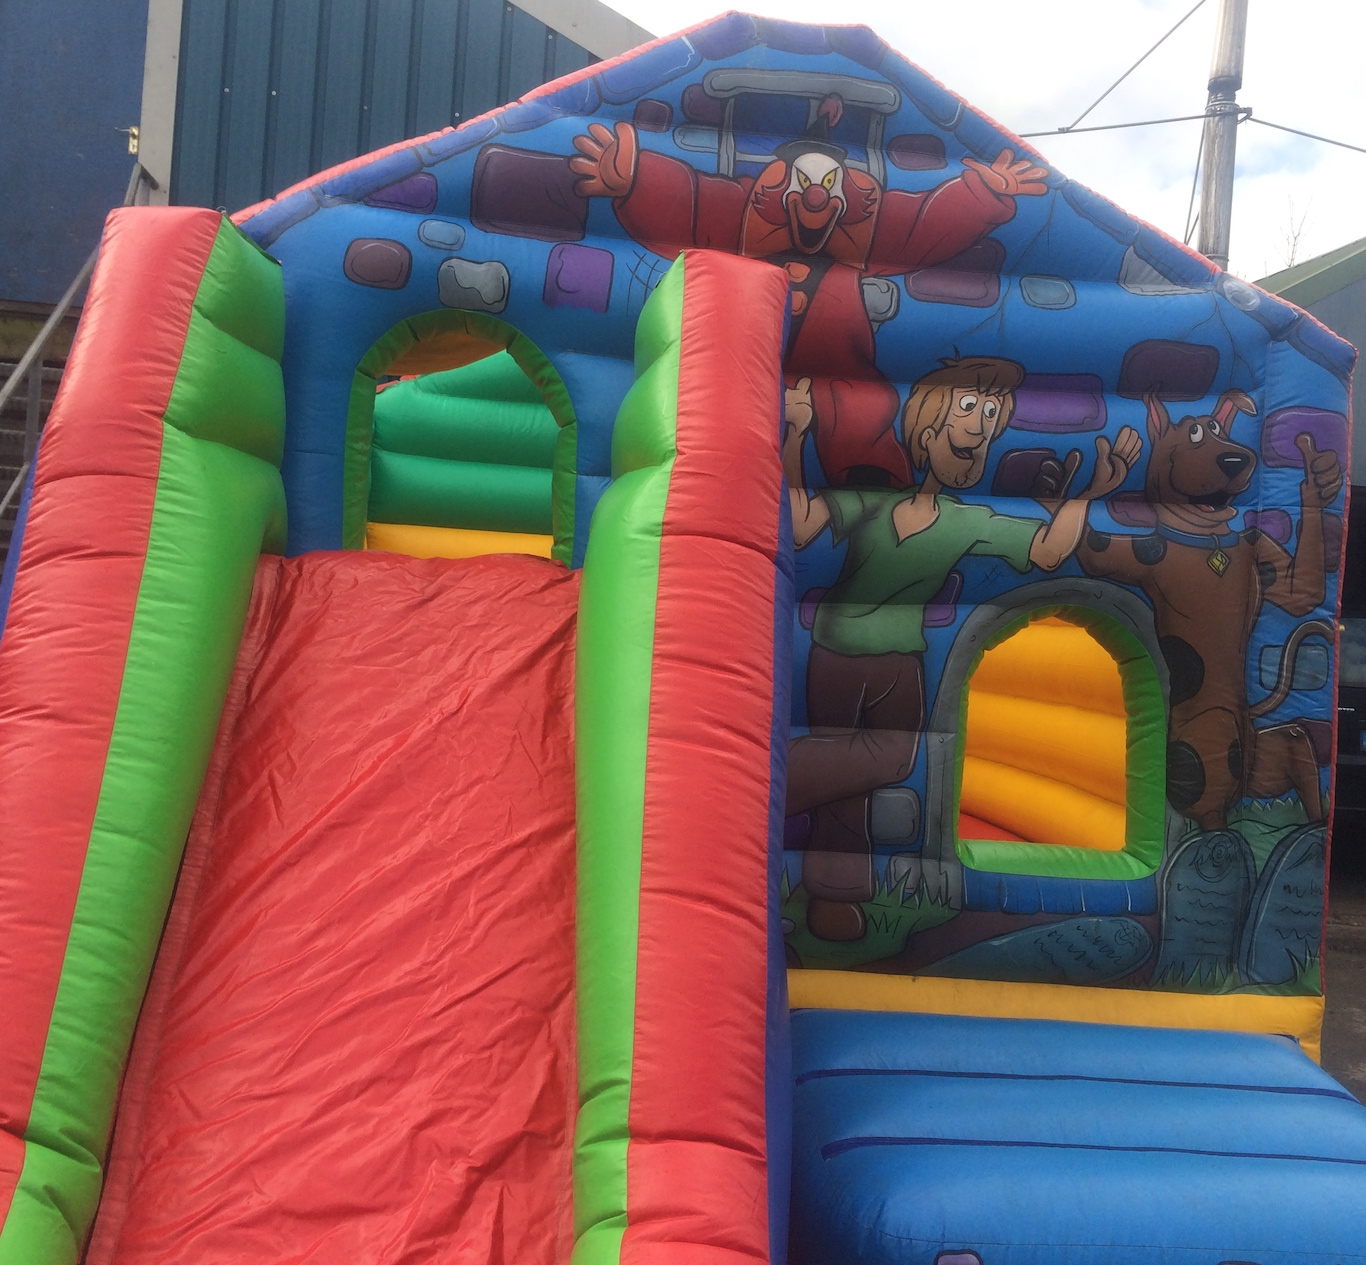 Scooby Doo Castle with Slide 12x21ft